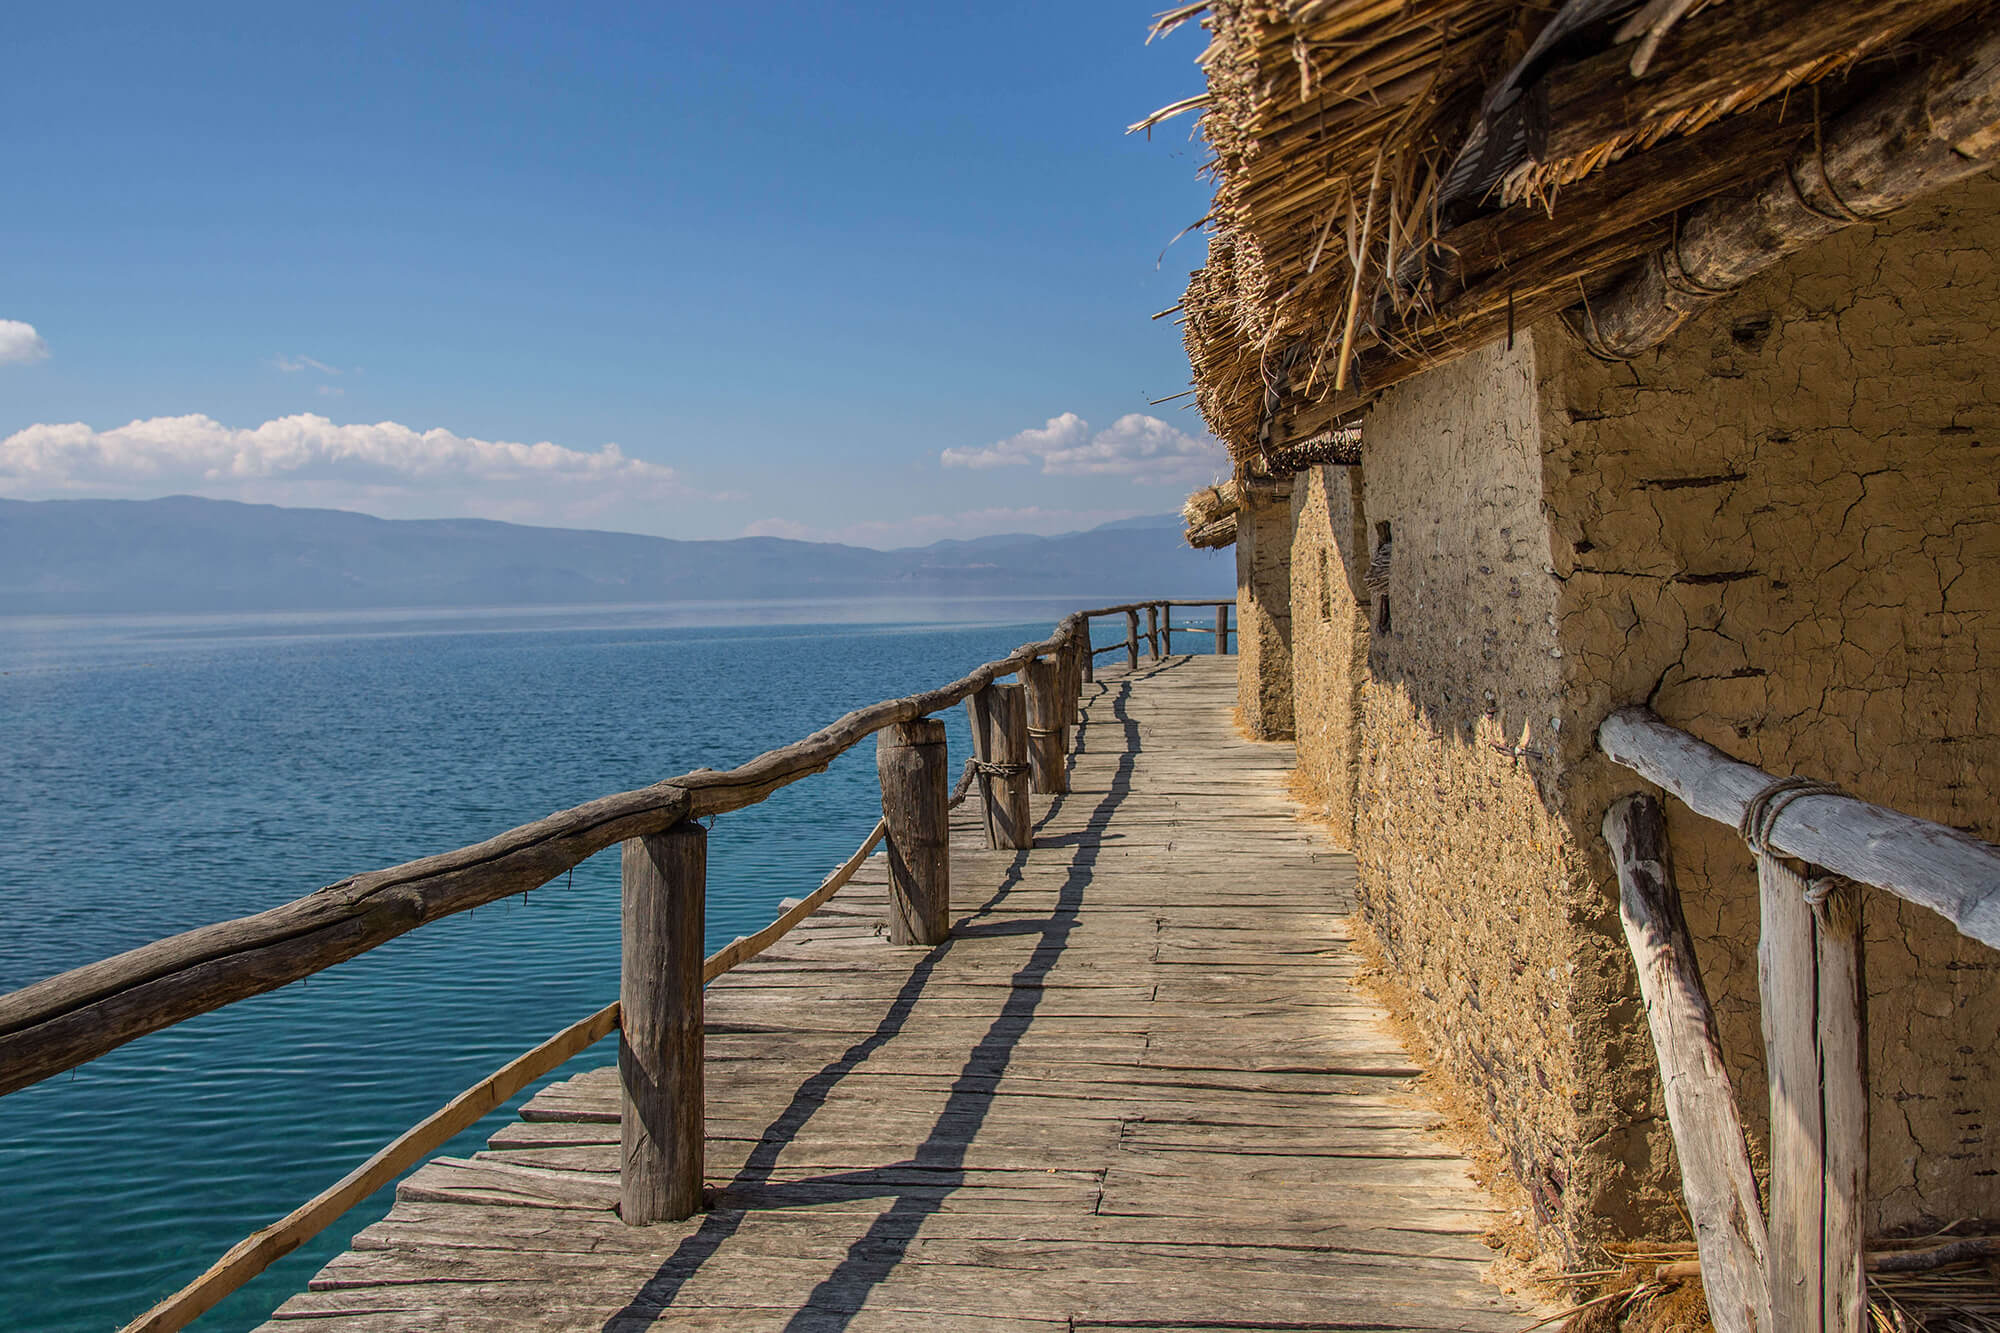 Checking Out The Floating Museum Houses in Macedonia